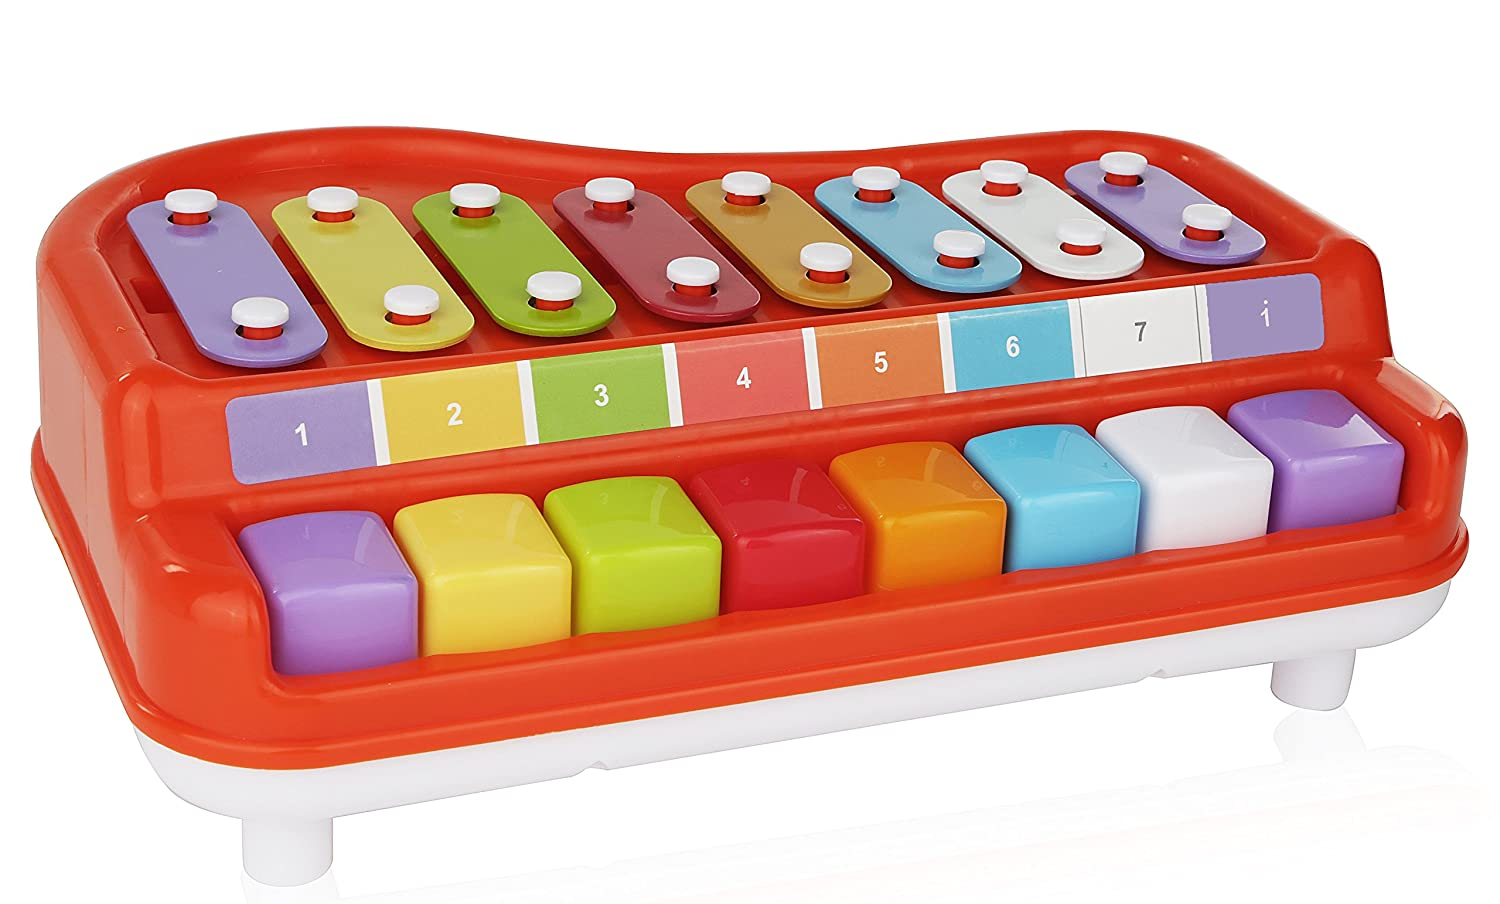 2 In 1 Xylophone for Kids, For your Mini Musician / Piano / Casio Musical Toy, Bright Multi-Colored Keys, Instrument for Babies, Toddlers and Preschoolers, With Music Cards Songbook With Music Cards Songbook Number 1 in Gadgets